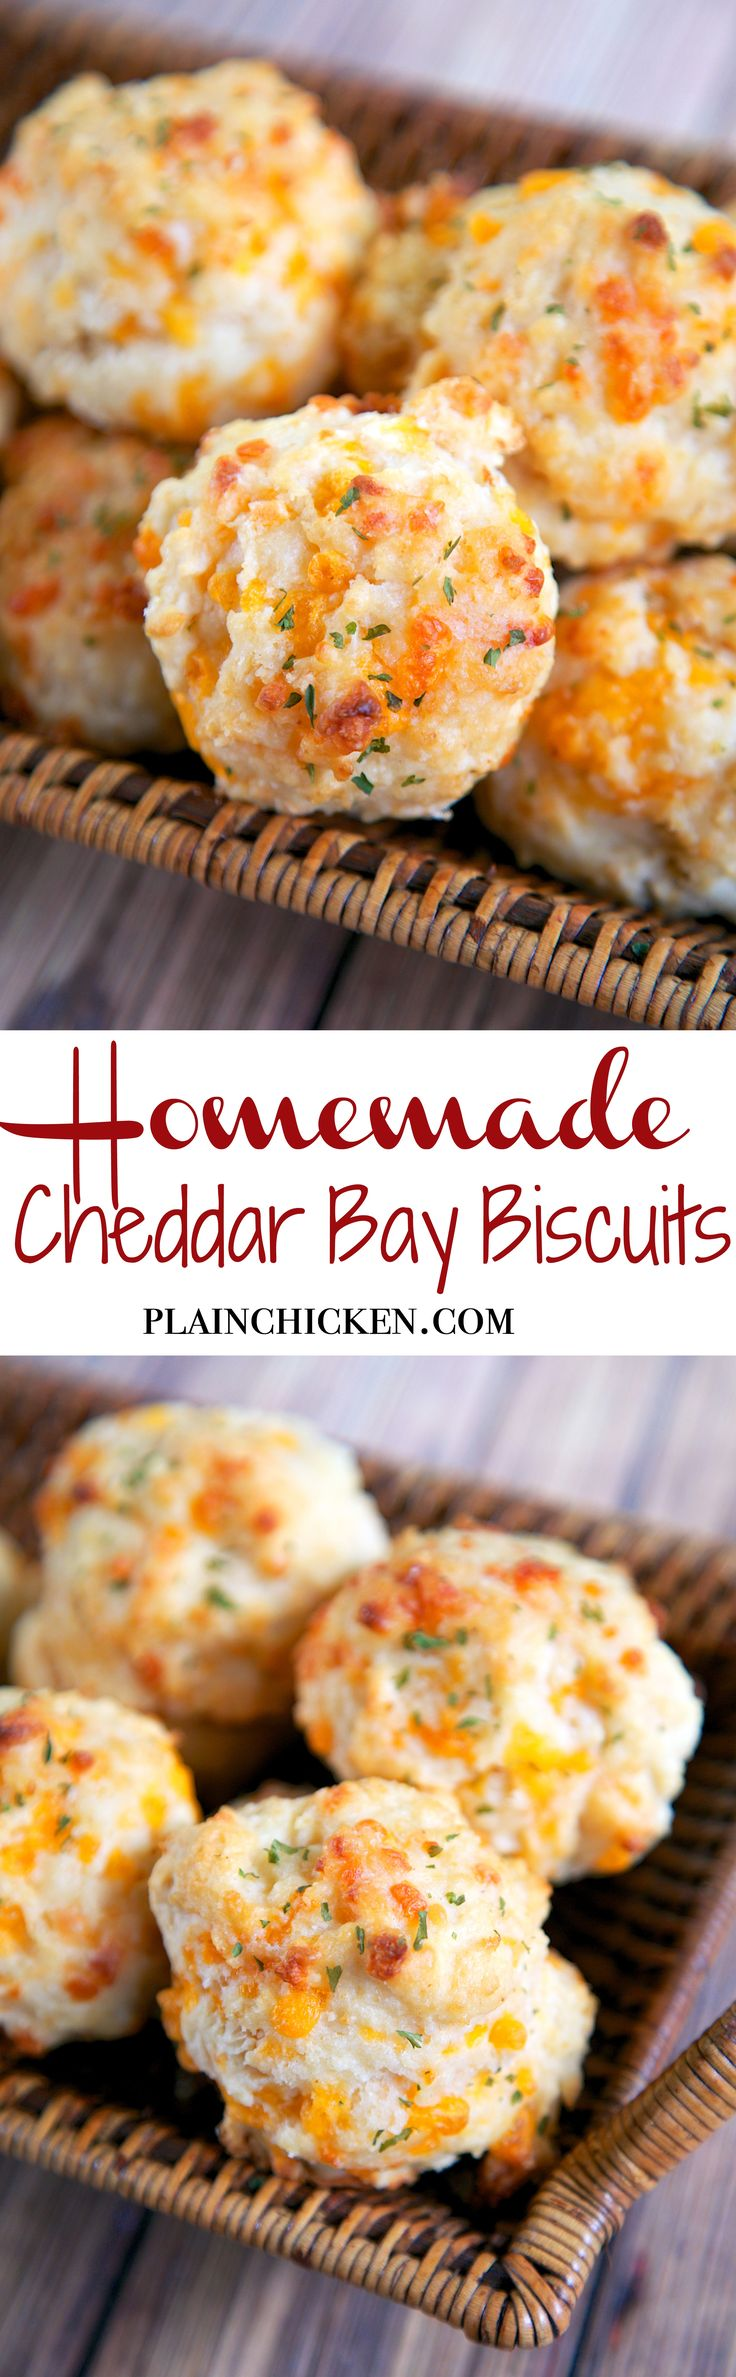 Homemade Cheddar Bay Biscuits - so quick and delicious! Self-Rising flour, butter, cheese, milk and melted butter. Ready in about 15 minutes. They taste better than the original!